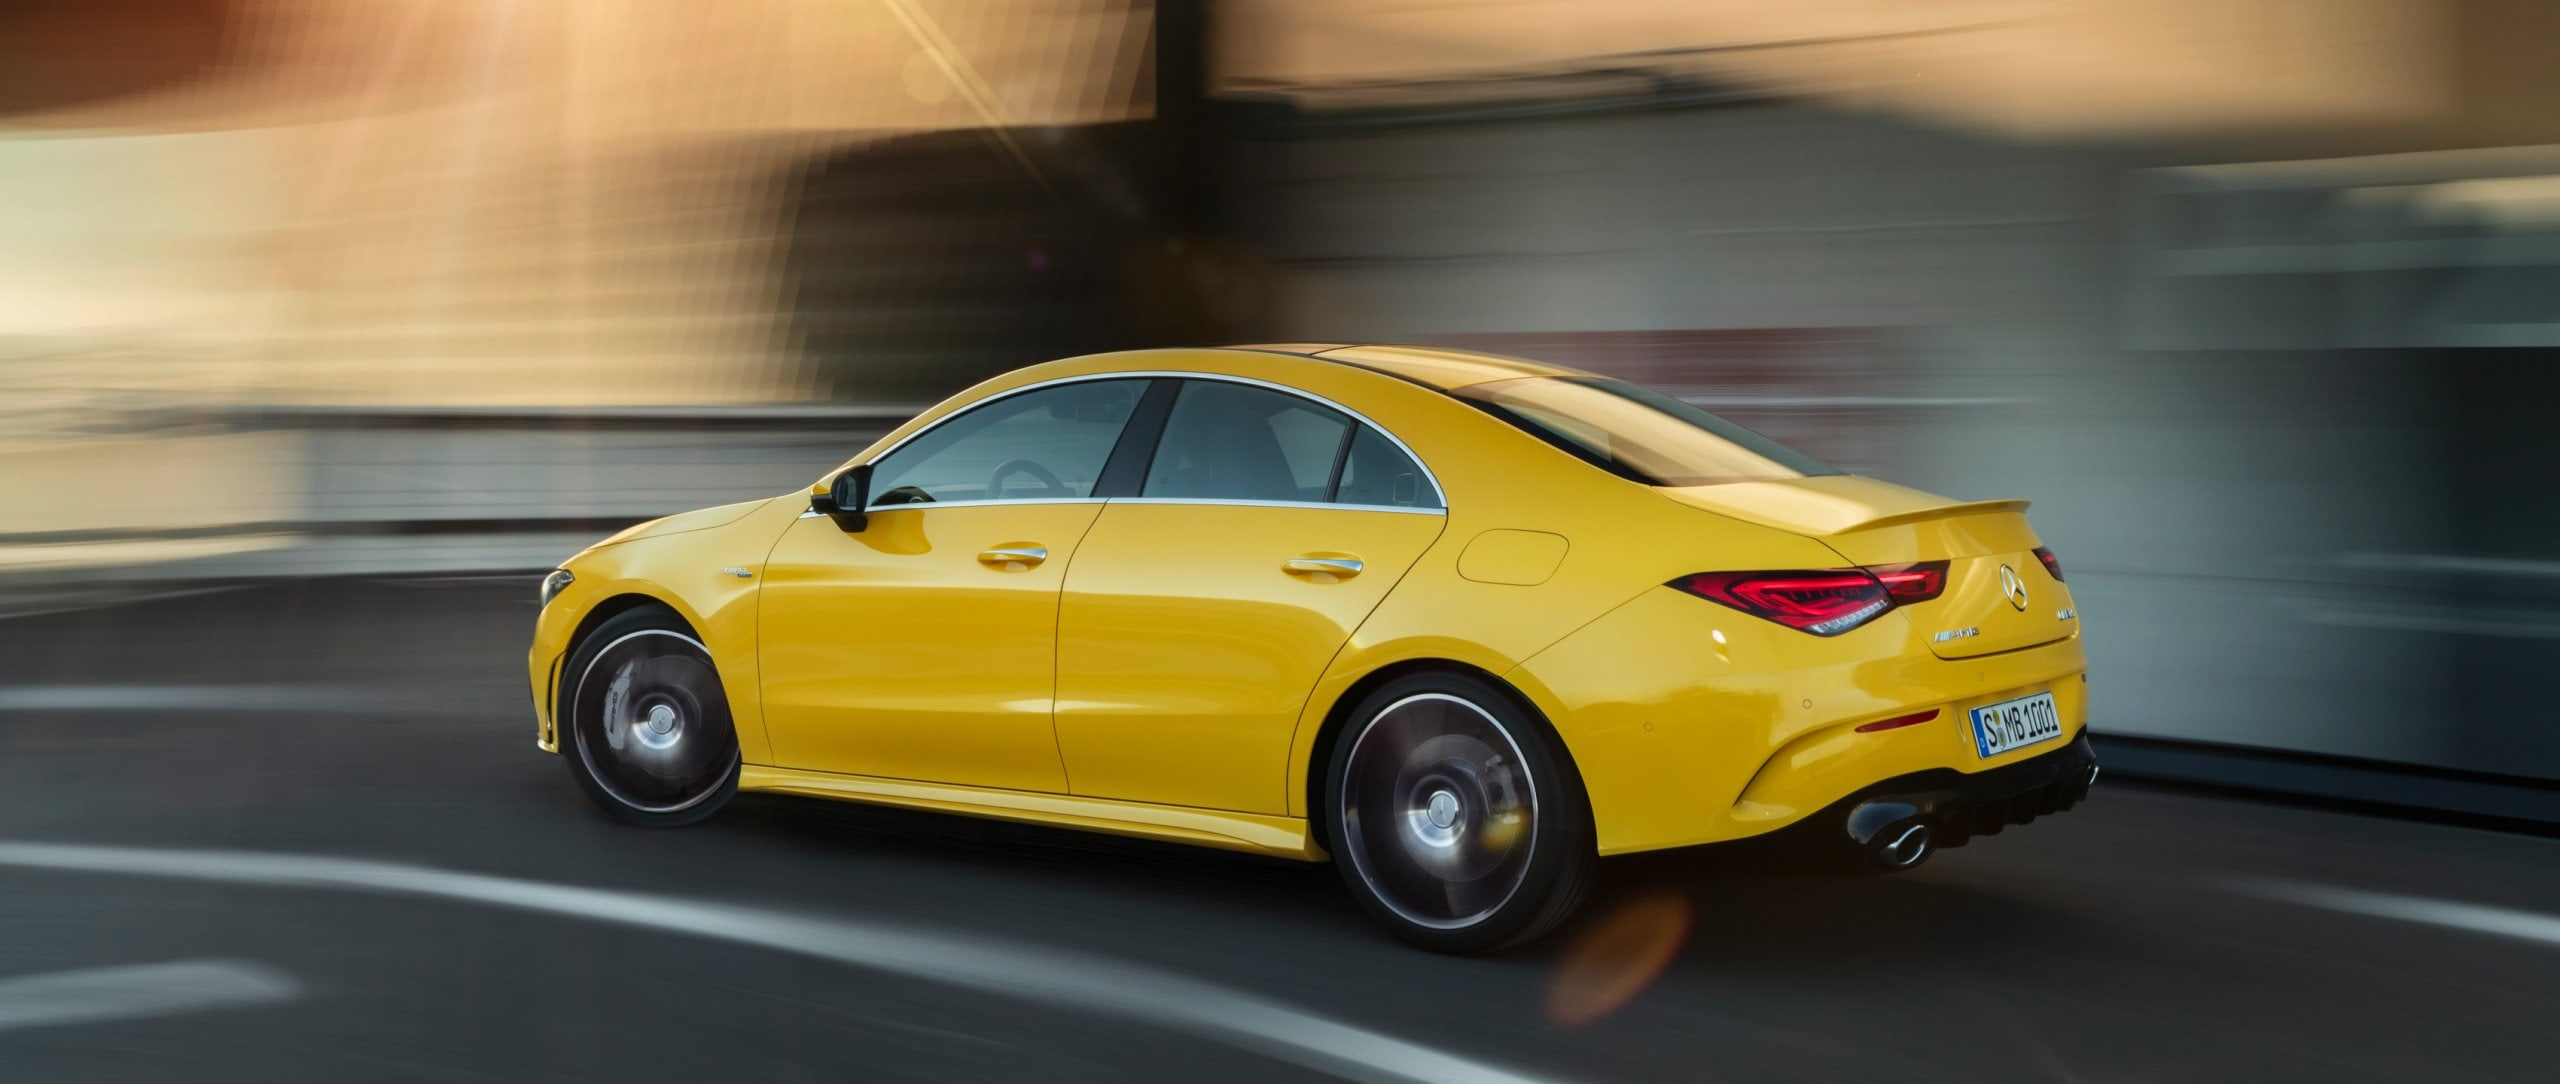 Rear view of the new 2019 Mercedes-AMG CLA 35 4MATIC (C 118) in sun yellow driving on the street.